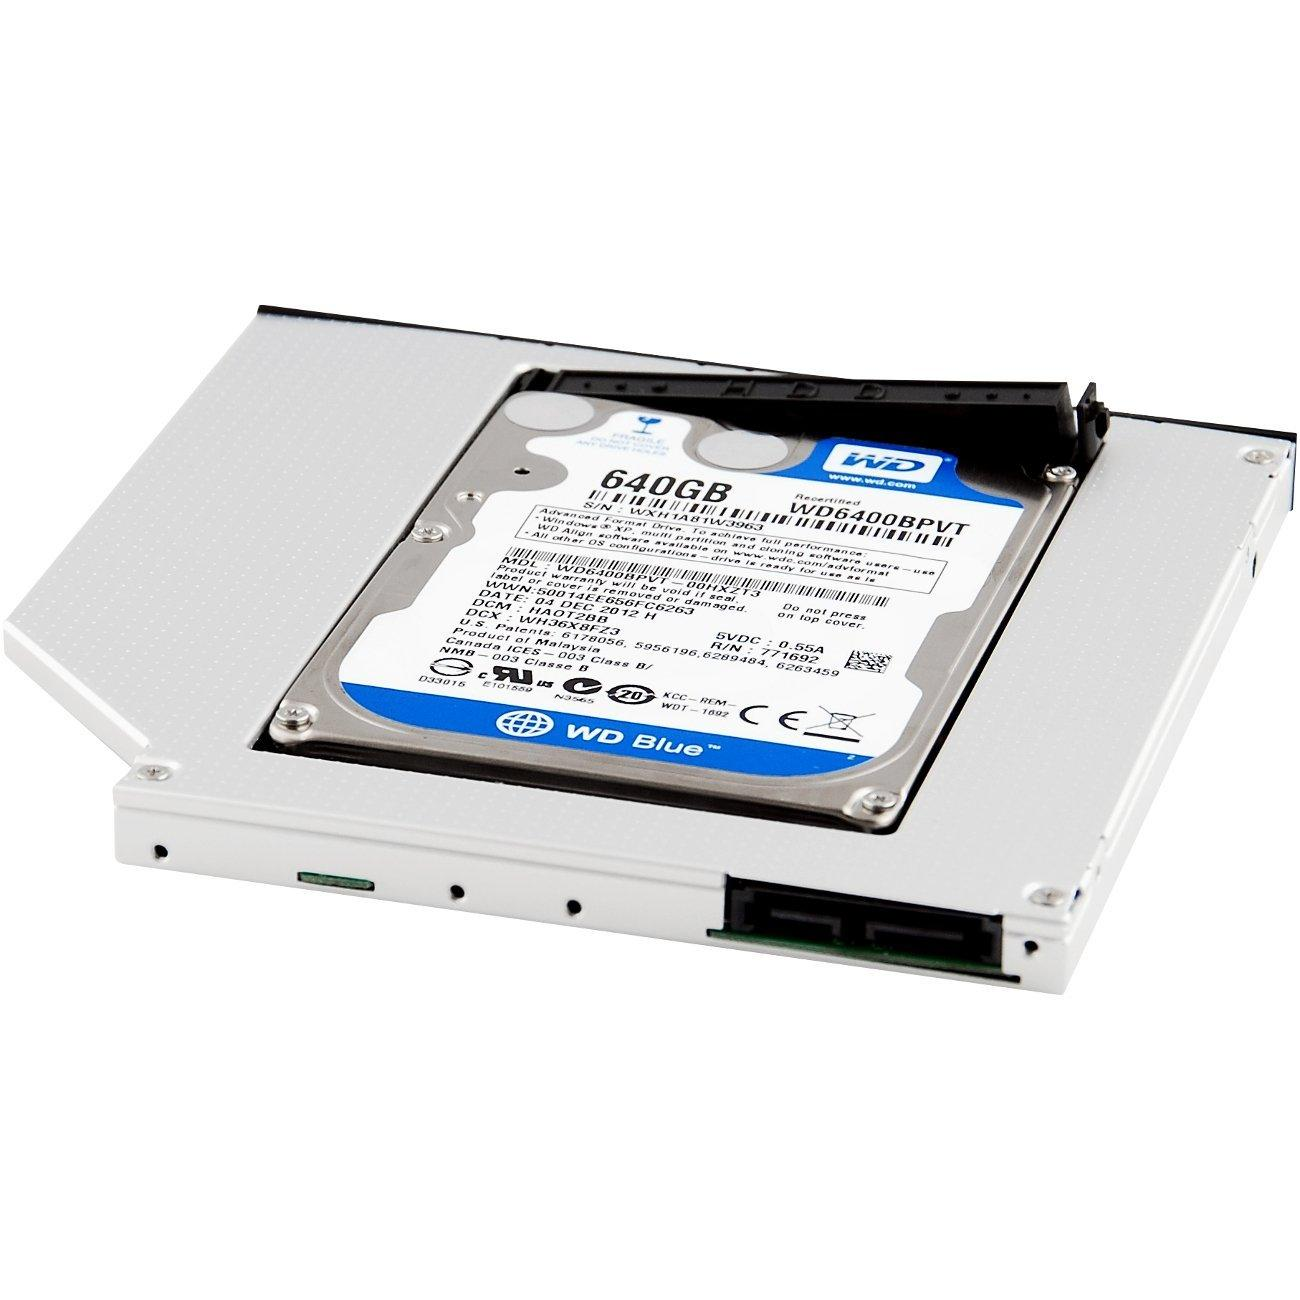 Wholesale- CAA-Hot SATA Optical Bay 2nd Hard Drive Caddy, Universal for  9 5mm CD / DVD Drive Slot (for SSD and HDD)